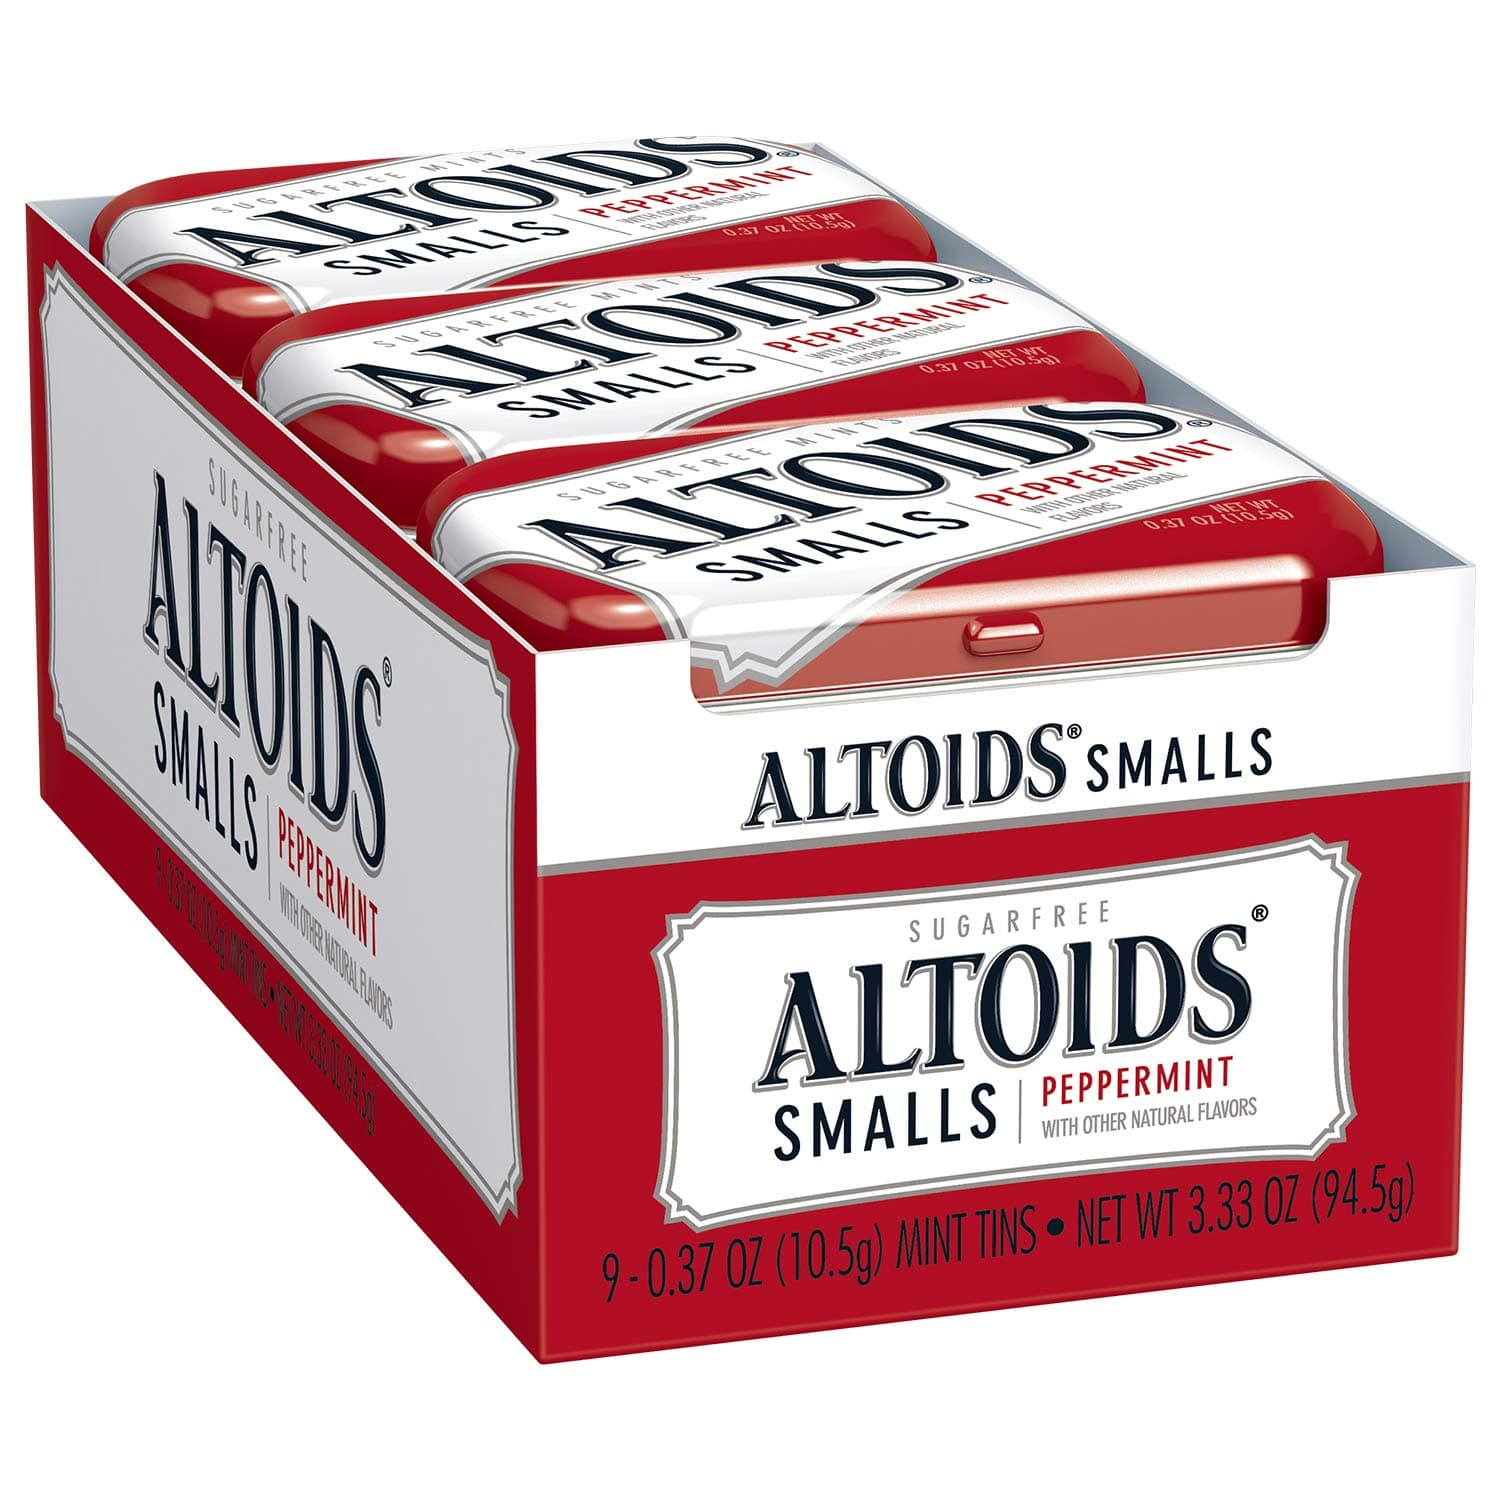 9-Pack of 0.37oz ALTOIDS Smalls Peppermint Breath Mints $5.95 w/ S&S + Free Shipping